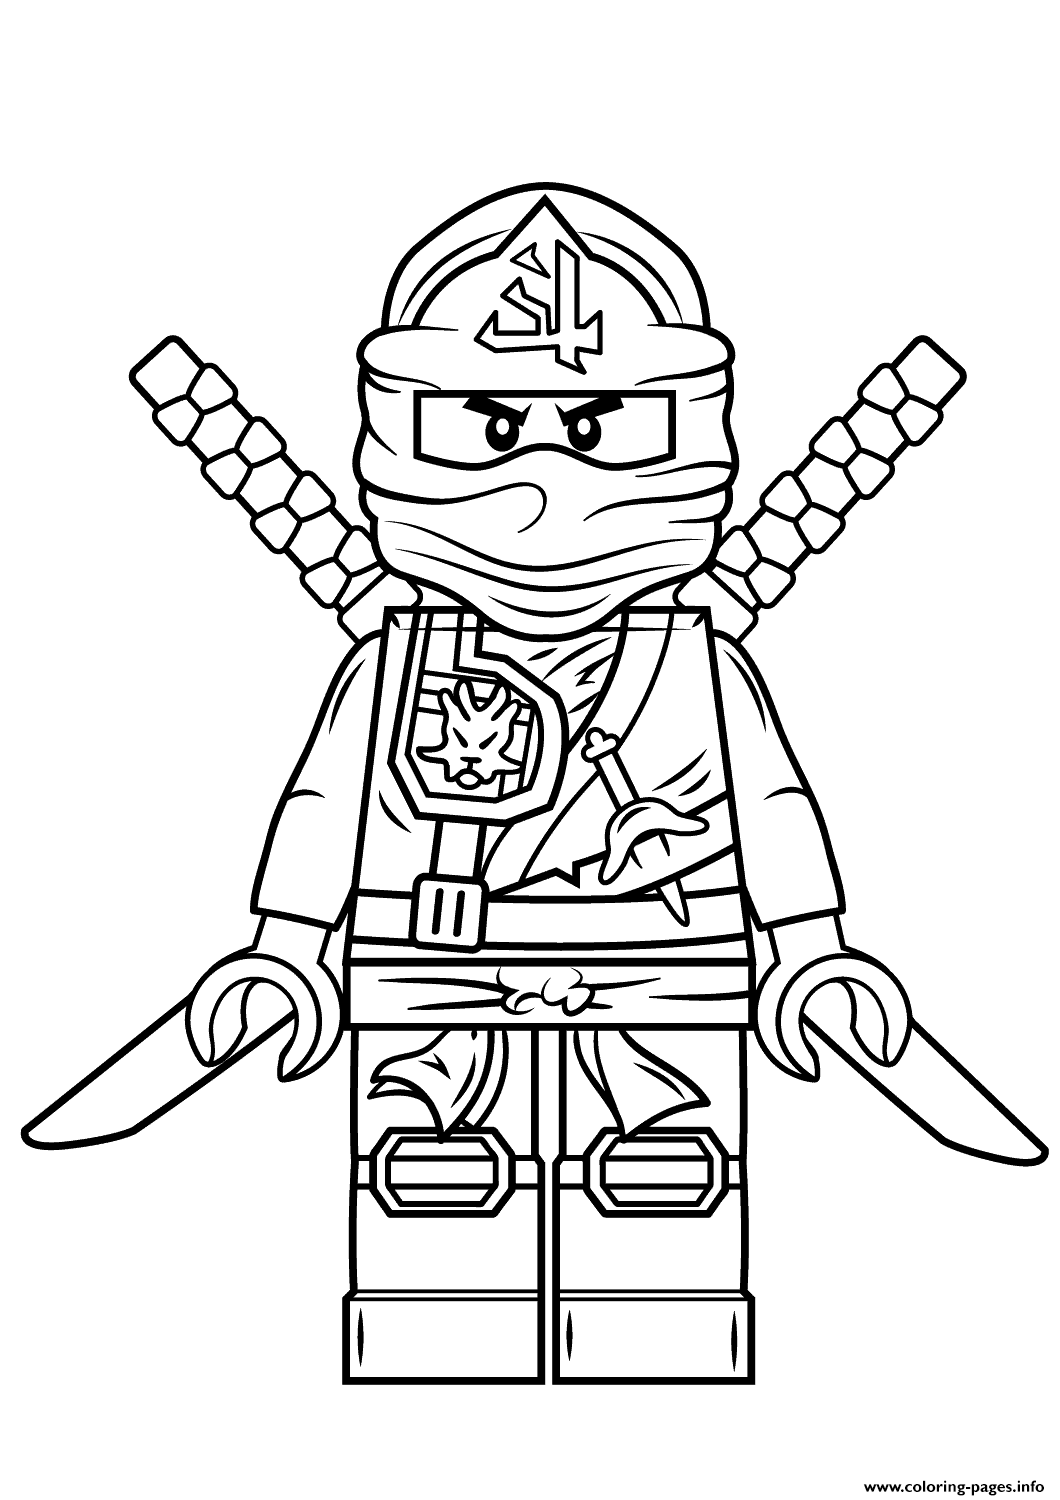 Print lego ninjago green ninja coloring pages kids